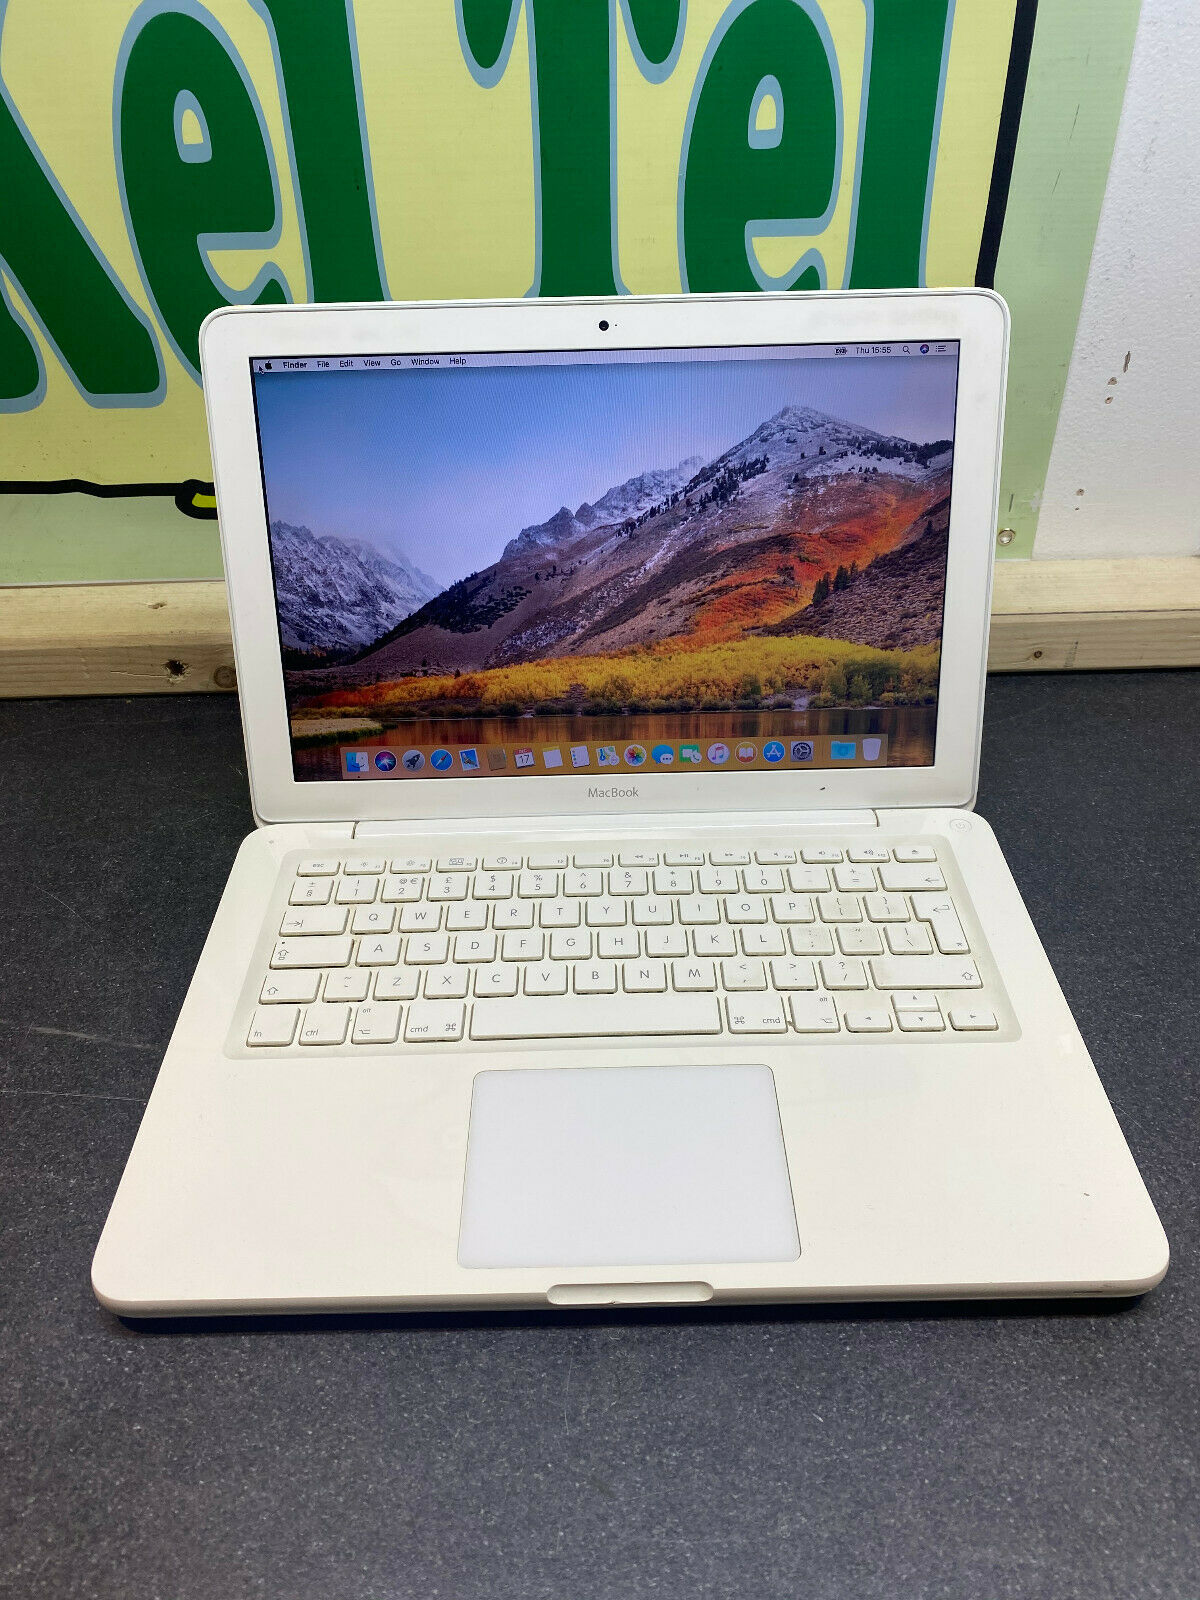 macbook: Apple MacBook A1342 13.3″ H Sierra 4GB RAM 250GB HDD READY TO USE LAPTOP WIFI UK